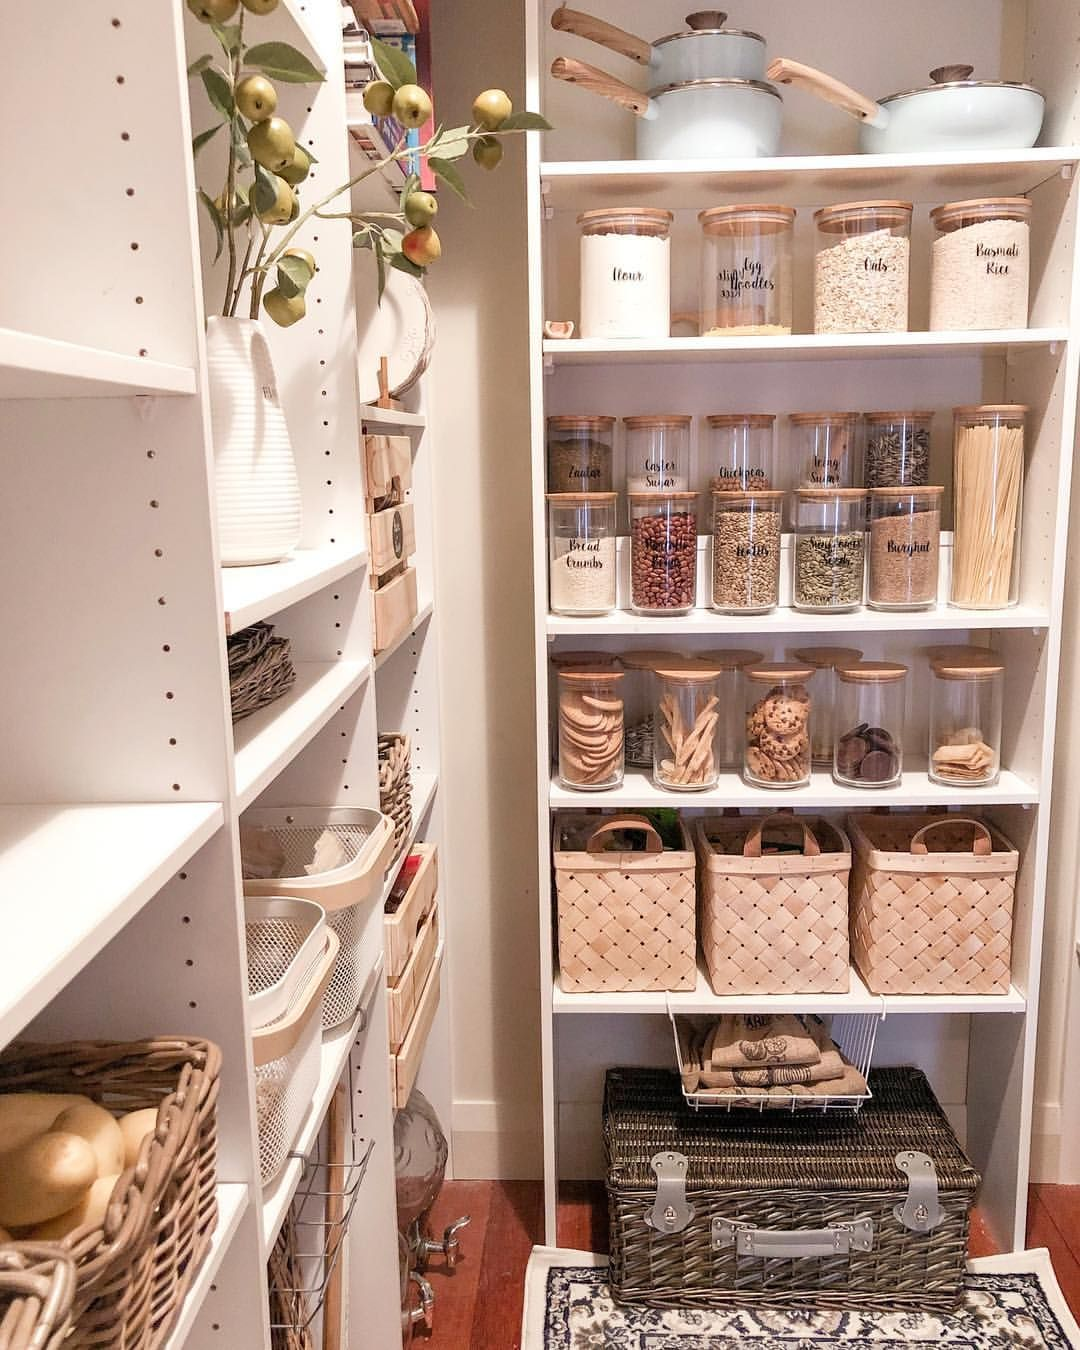 𝙿𝚊𝚗𝚝𝚛𝚢 𝙾𝚛𝚐𝚊𝚗𝚒𝚣𝚒𝚗𝚐 Our Pantry Is Undergoing A Few Littl Ikea Kitchen Pantry Small Pantry Organization Ikea Kitchen